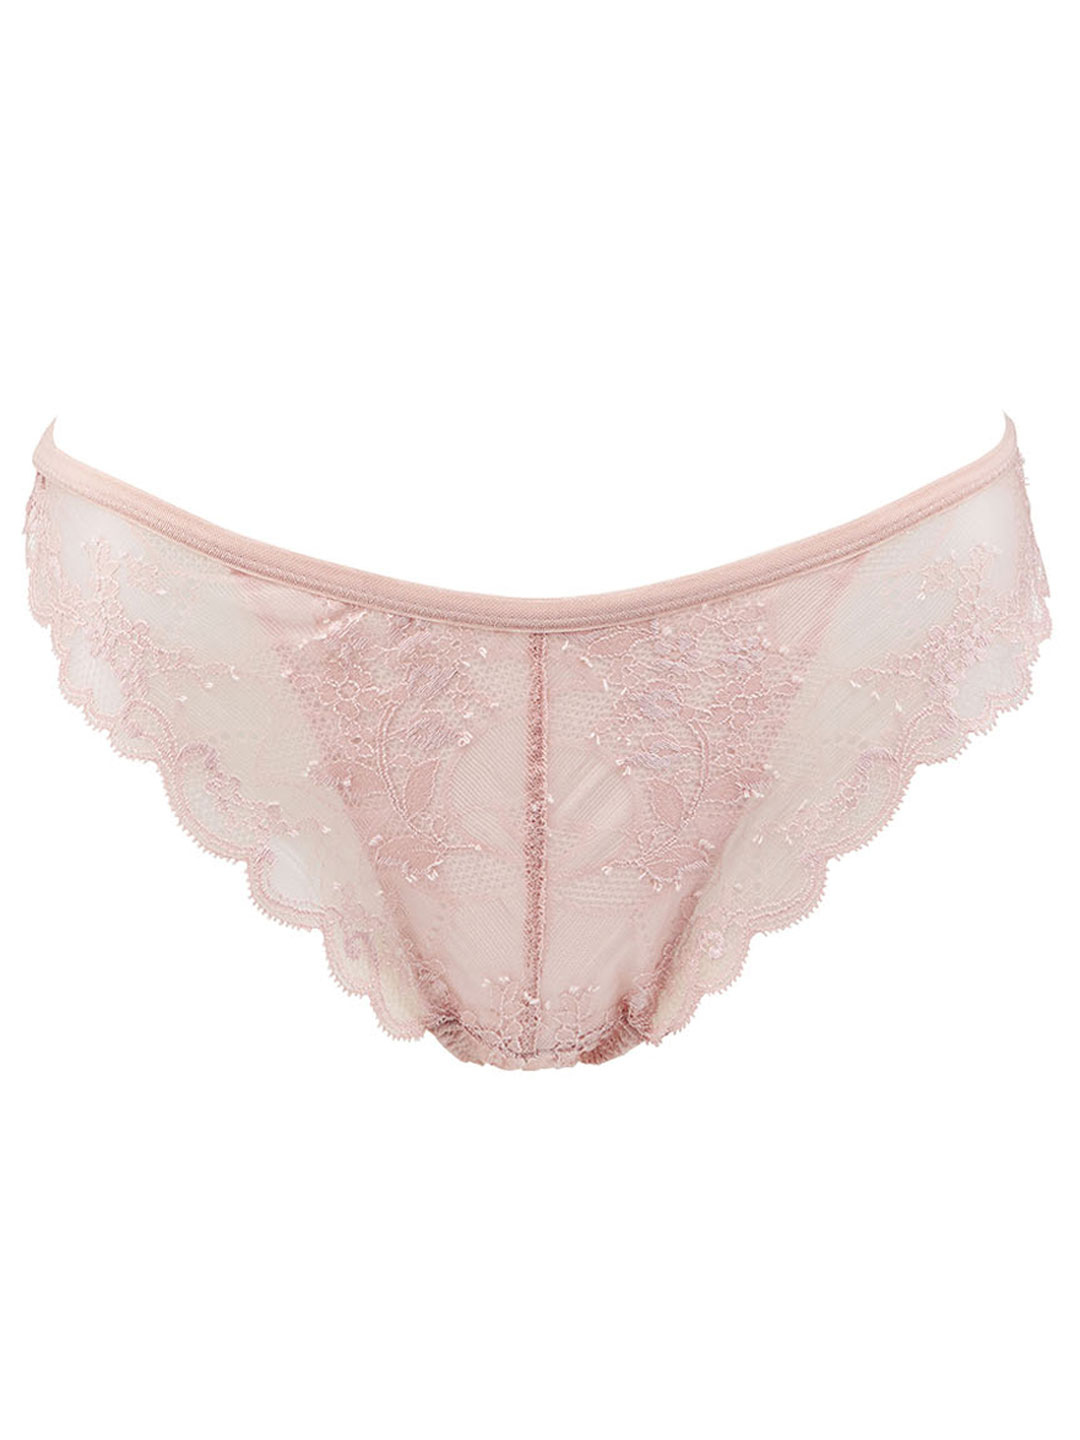 Lace Thong PCL408